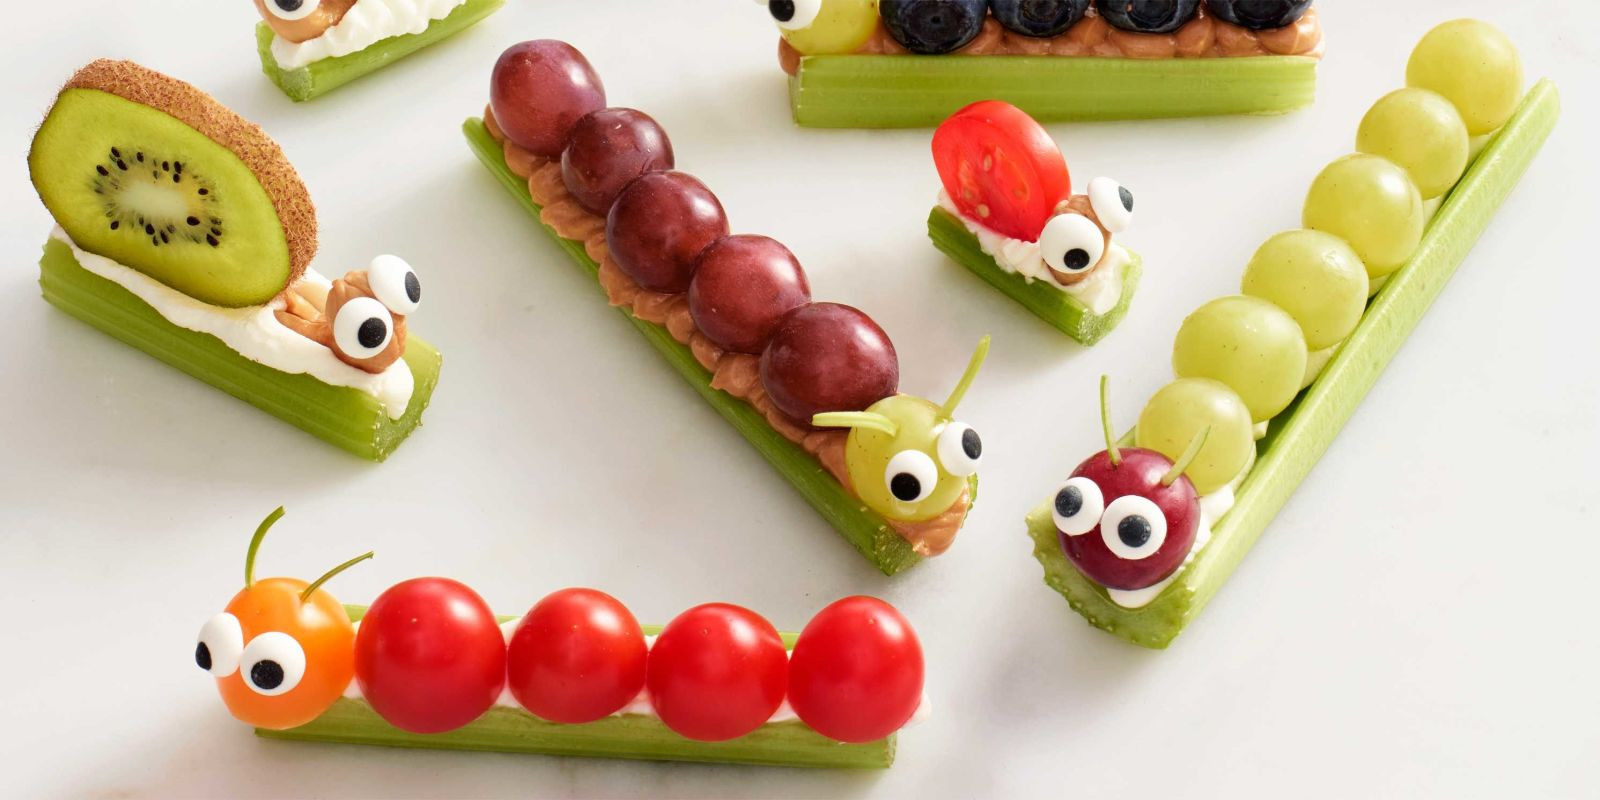 Childrens Healthy Snacks  22 Easy After School Snacks Your Kids Will Go Wild Over